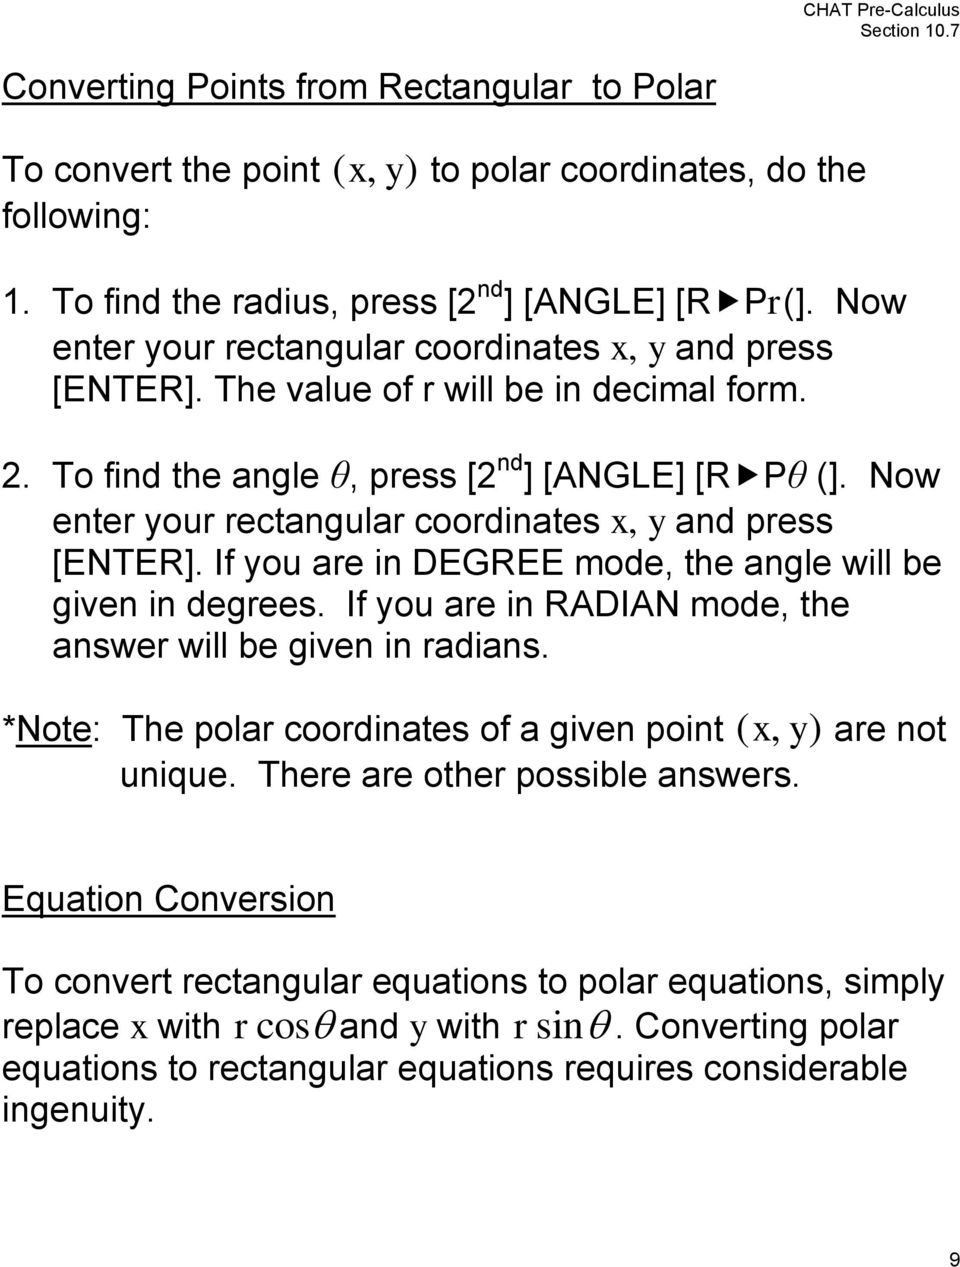 Now ente ou ectangula coodinates, and pess [ENTER]. If ou ae in DEGREE mode, the angle will be given in degees. If ou ae in RADIAN mode, the answe will be given in adians.